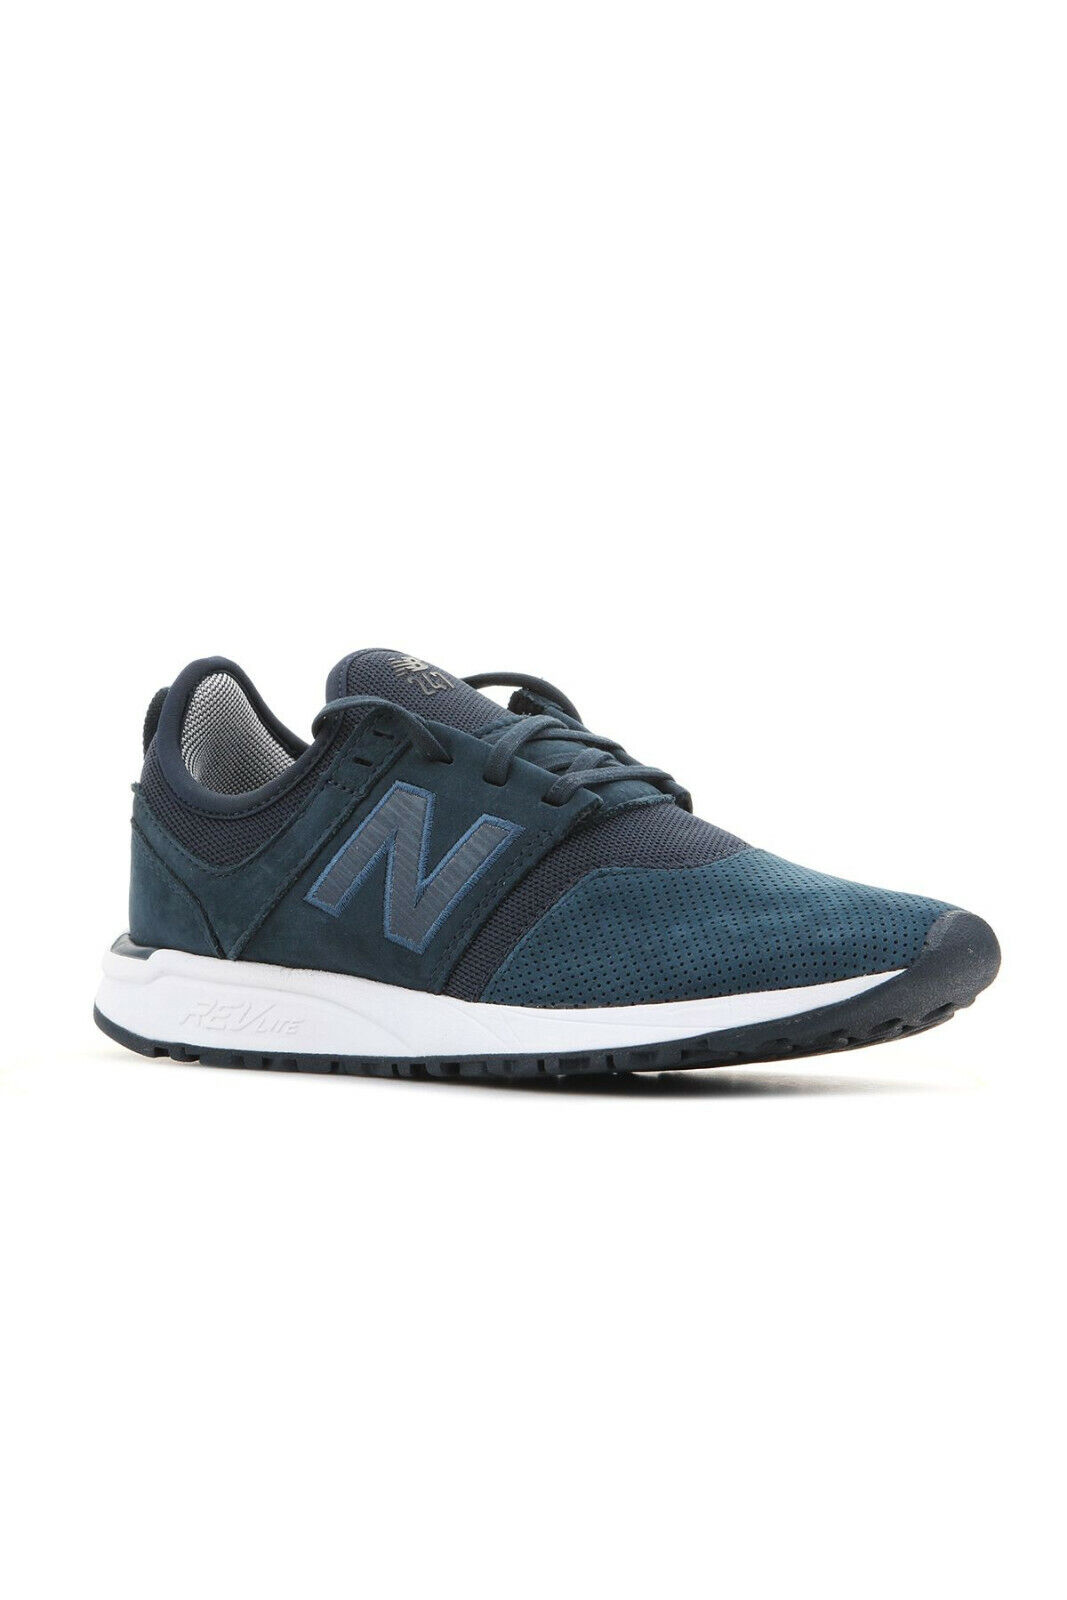 New balance lifestyle mode de vie wrl247wp  trainers new